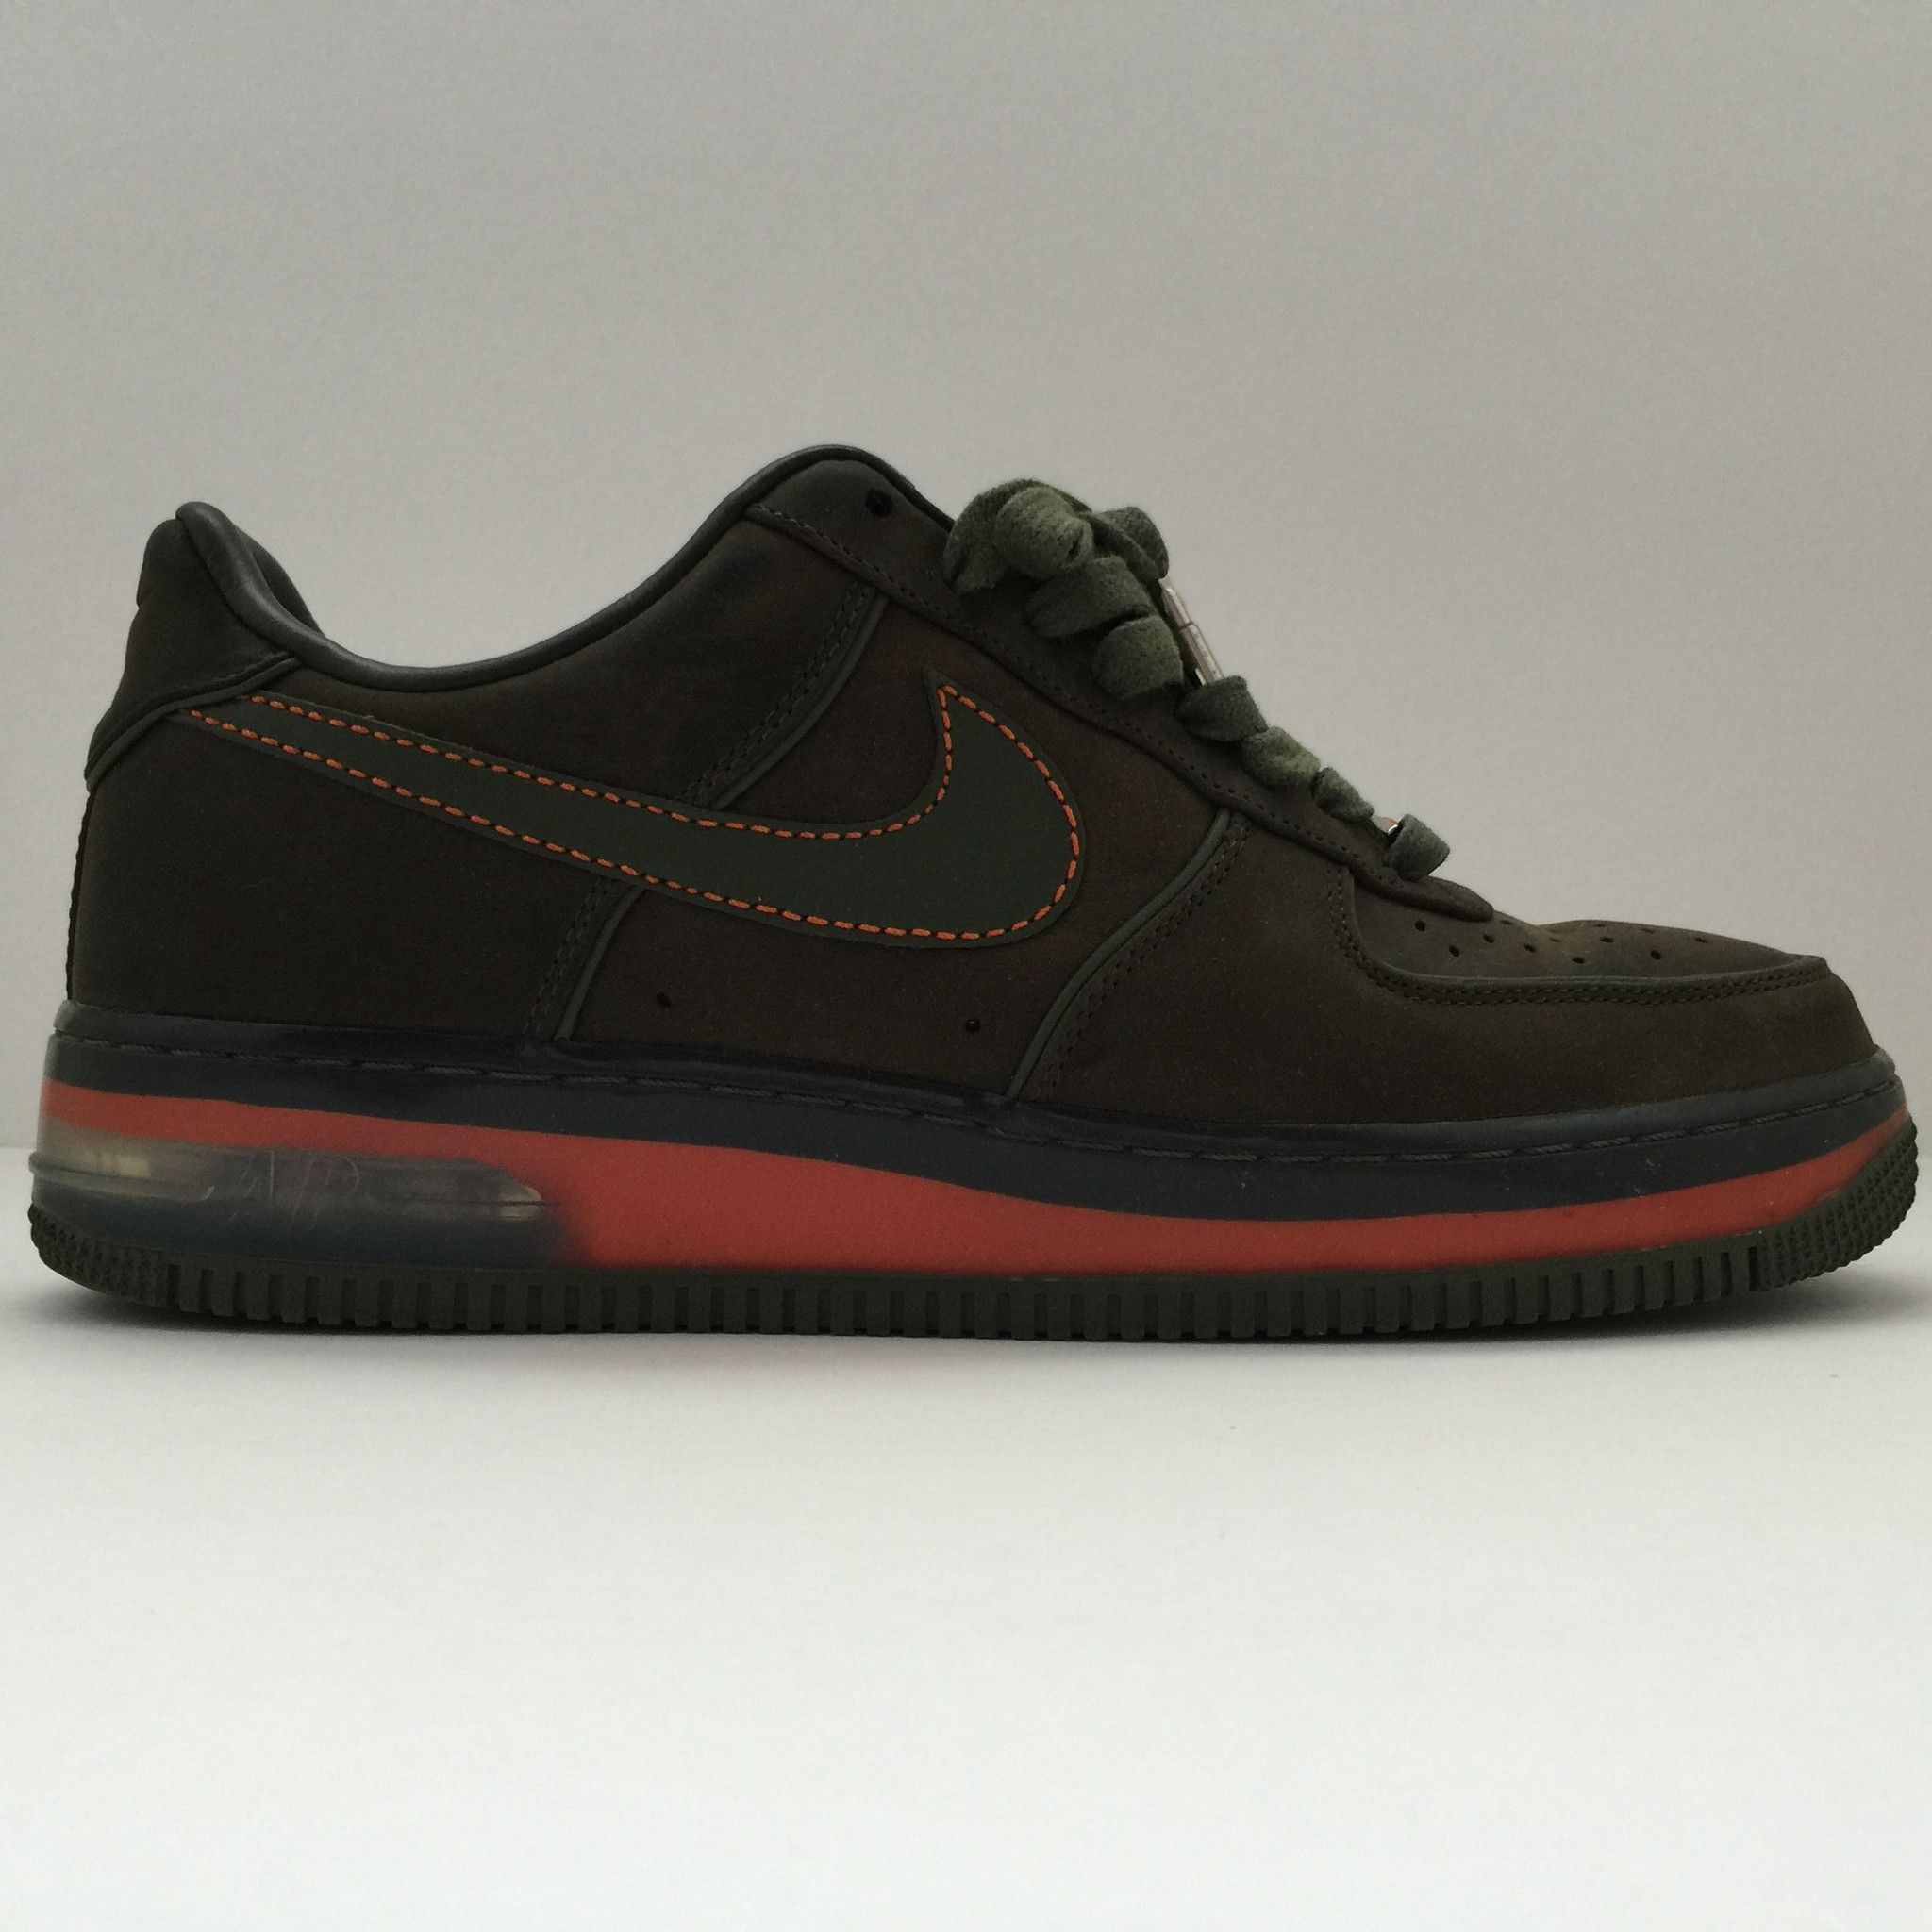 Nike Air Force 1 Un Products Supremo Max Berlin Tamaño Products Un 7c3316